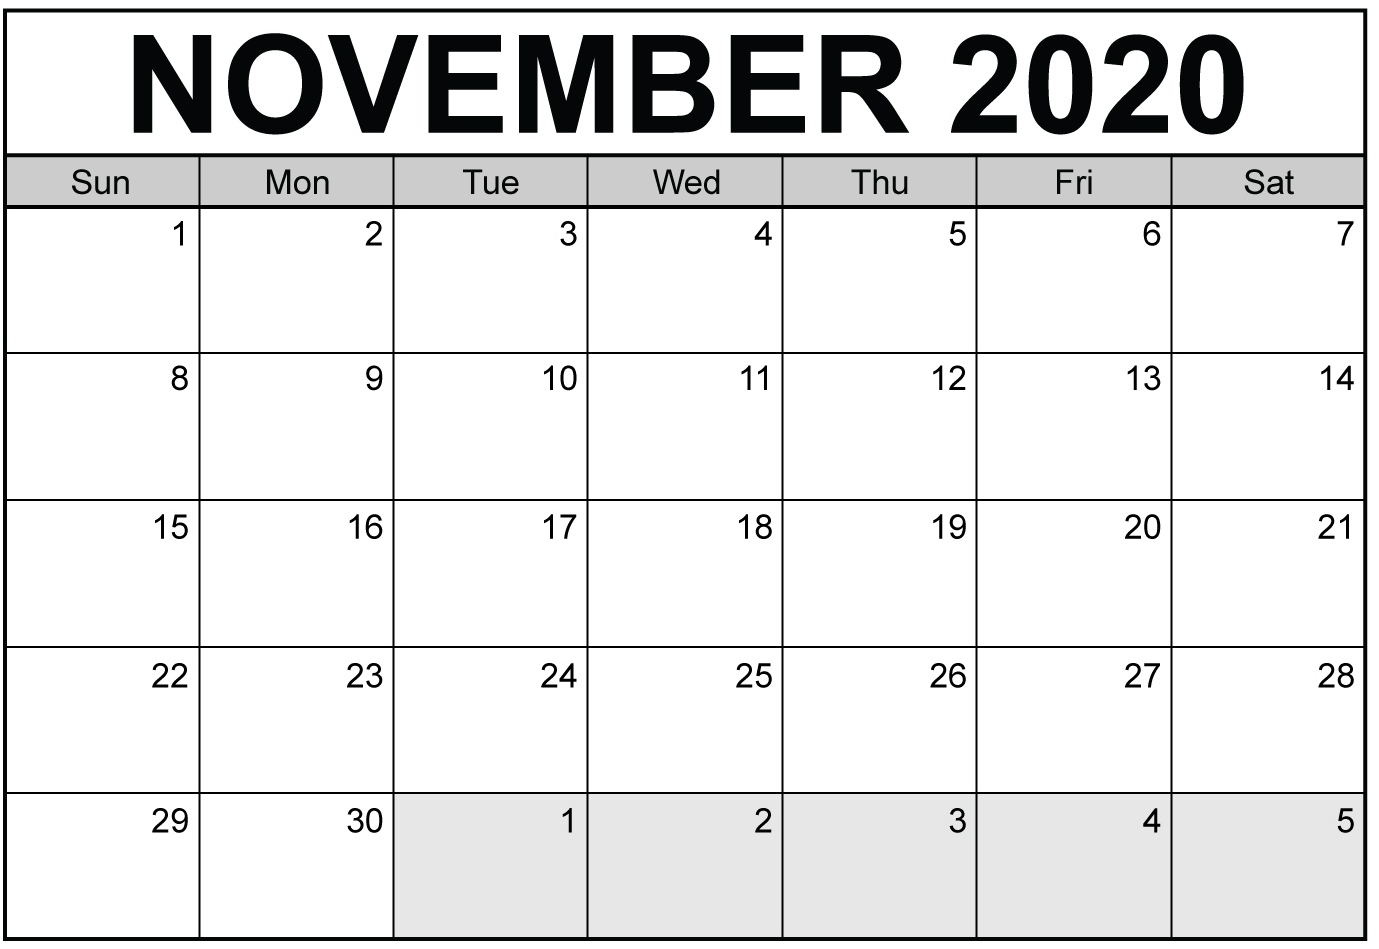 Free Printable November 2020 Calendar With Blank Notes - Set in 2020 Printabl Calendar With Space To Write Free